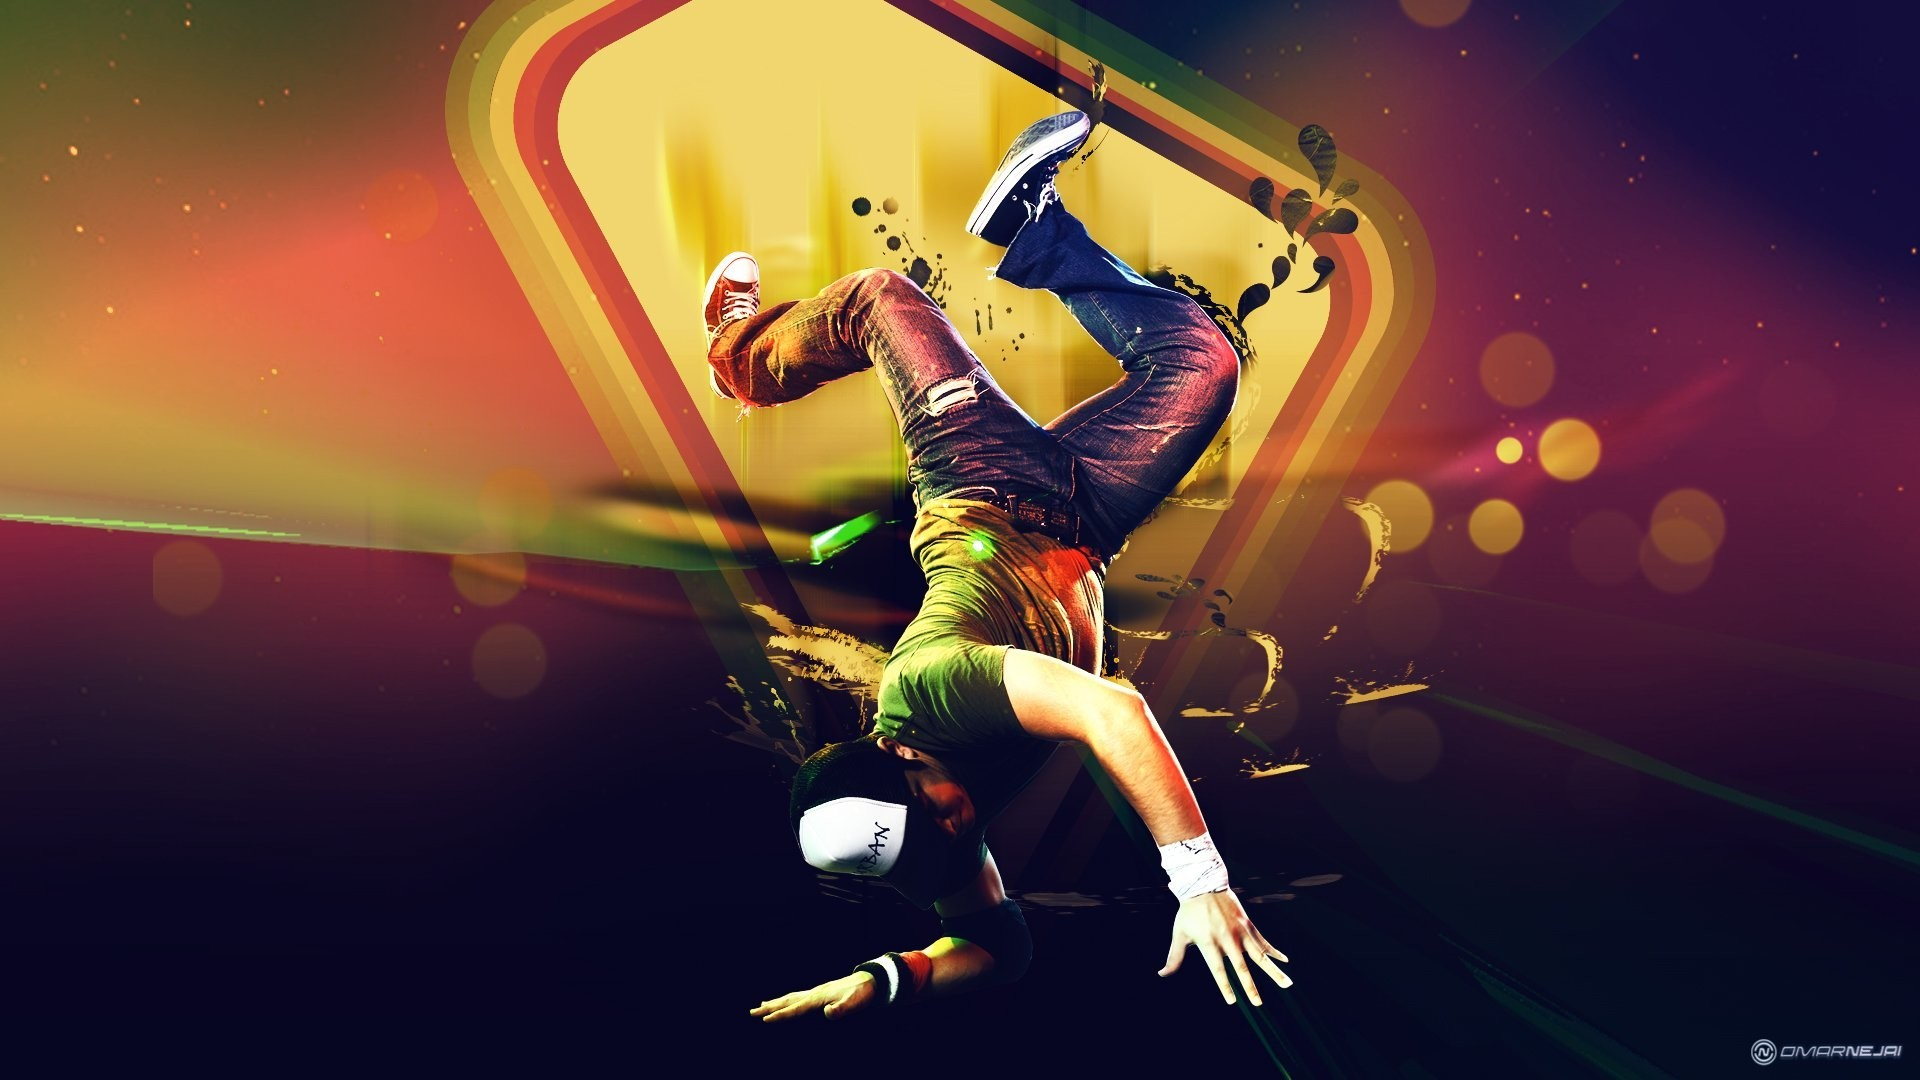 Dance Background Images 56 Pictures